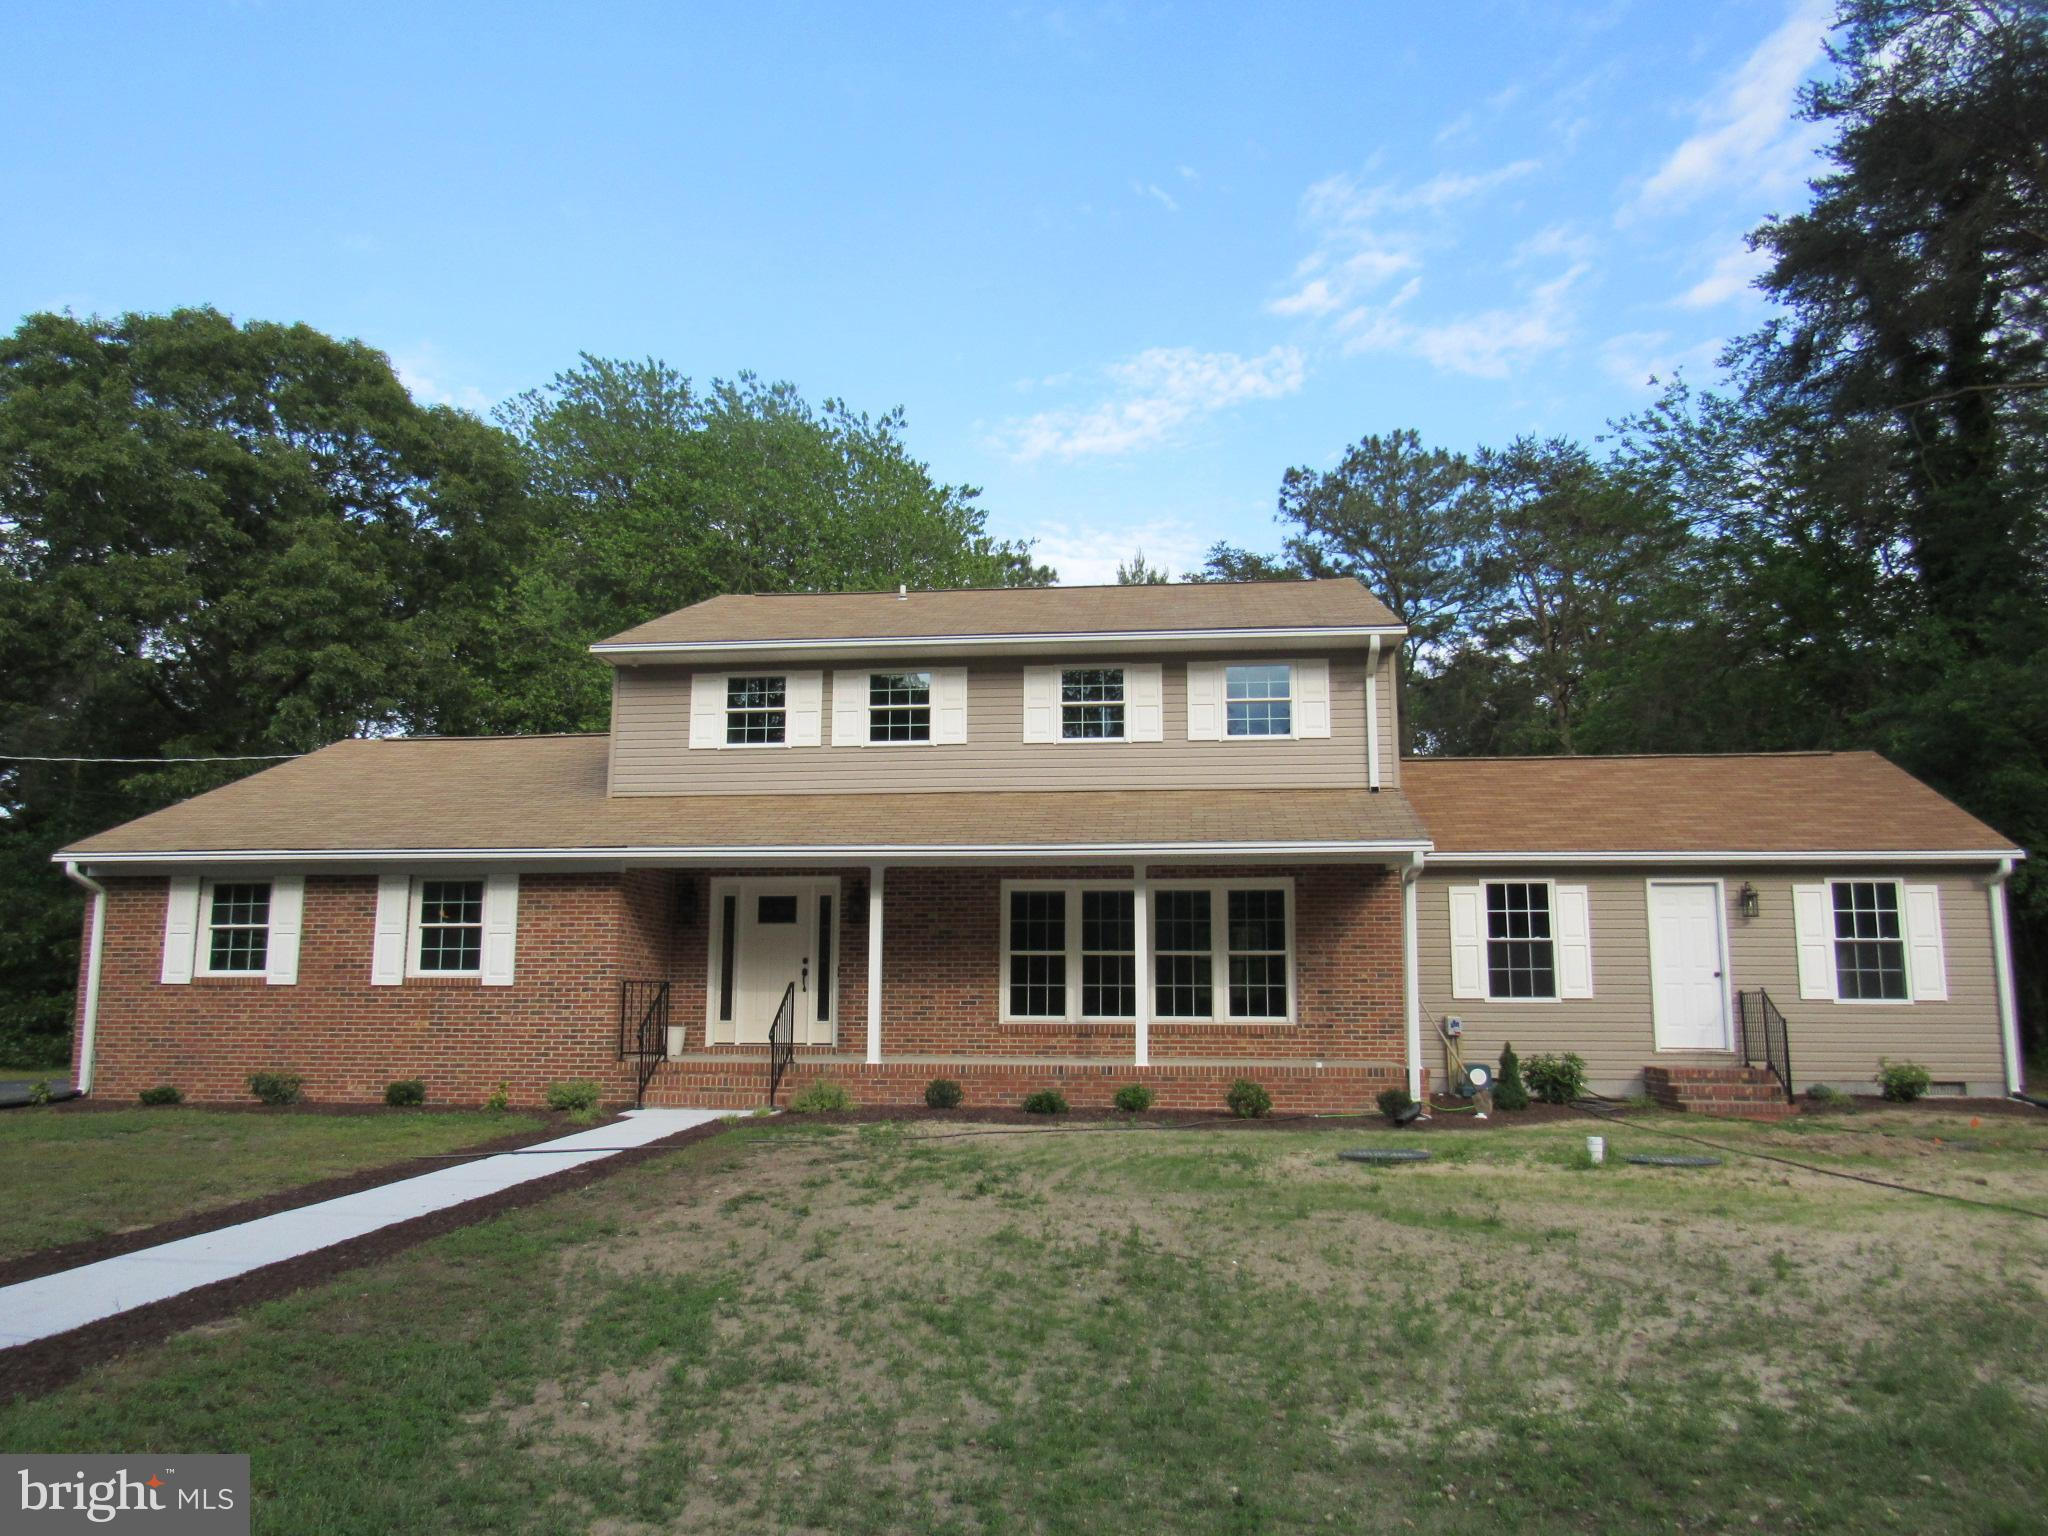 """Make this amazing home yours! This 5-BR, 3.5-BA Brick Front Colonial is New New New from one end to the other! This 2,639 sq ft home with 2-car attached garage and front porch offers a maintenance-free exterior.  This home is BETTER than new and features a wonderful first-floor IN-LAW SUITE.  The In-law suite offers a Kitchenette (10' x 8'6""""), Combined Living/Dining area (13' x 12'), Bedroom (10' x 10'), Large Bath with Step-In Shower, Storage Closet, and its own front entrance.   Beautifully situated on approx. 3/4 of an acre in an established neighborhood just outside of Seaford near the Nanticoke River.  NO HOA. BREATH-TAKING KITCHEN with white cabinets and pantry for loads of storage, wet bar, drink cooler and new Stainless appliances.  NEW SEPTIC (Feb 2020), NEW WINDOWS, NEW INTERIOR & EXTERIOR DOORS, WOOD-BURNING FIREPLACE WITH BUILT-IN SHELVING, BEAUTIFUL NEW FLOORING, NEW MOLDING, NEW INTERIOR & EXTERIOR LIGHTING, TWO NEW HEAT PUMPS (2019), UPDATED ELECTRICAL, AND NEW LANDSCAPING.  There are USB receptacles in several rooms for your charging pleasure.  There is 744 sq ft in the basement ready for your personal touches, and a 10 x 14 shed is included.  This home has it all....and even more!  Be sure to see the list of amenities, upgrades, and special features this move-in ready home offers."""